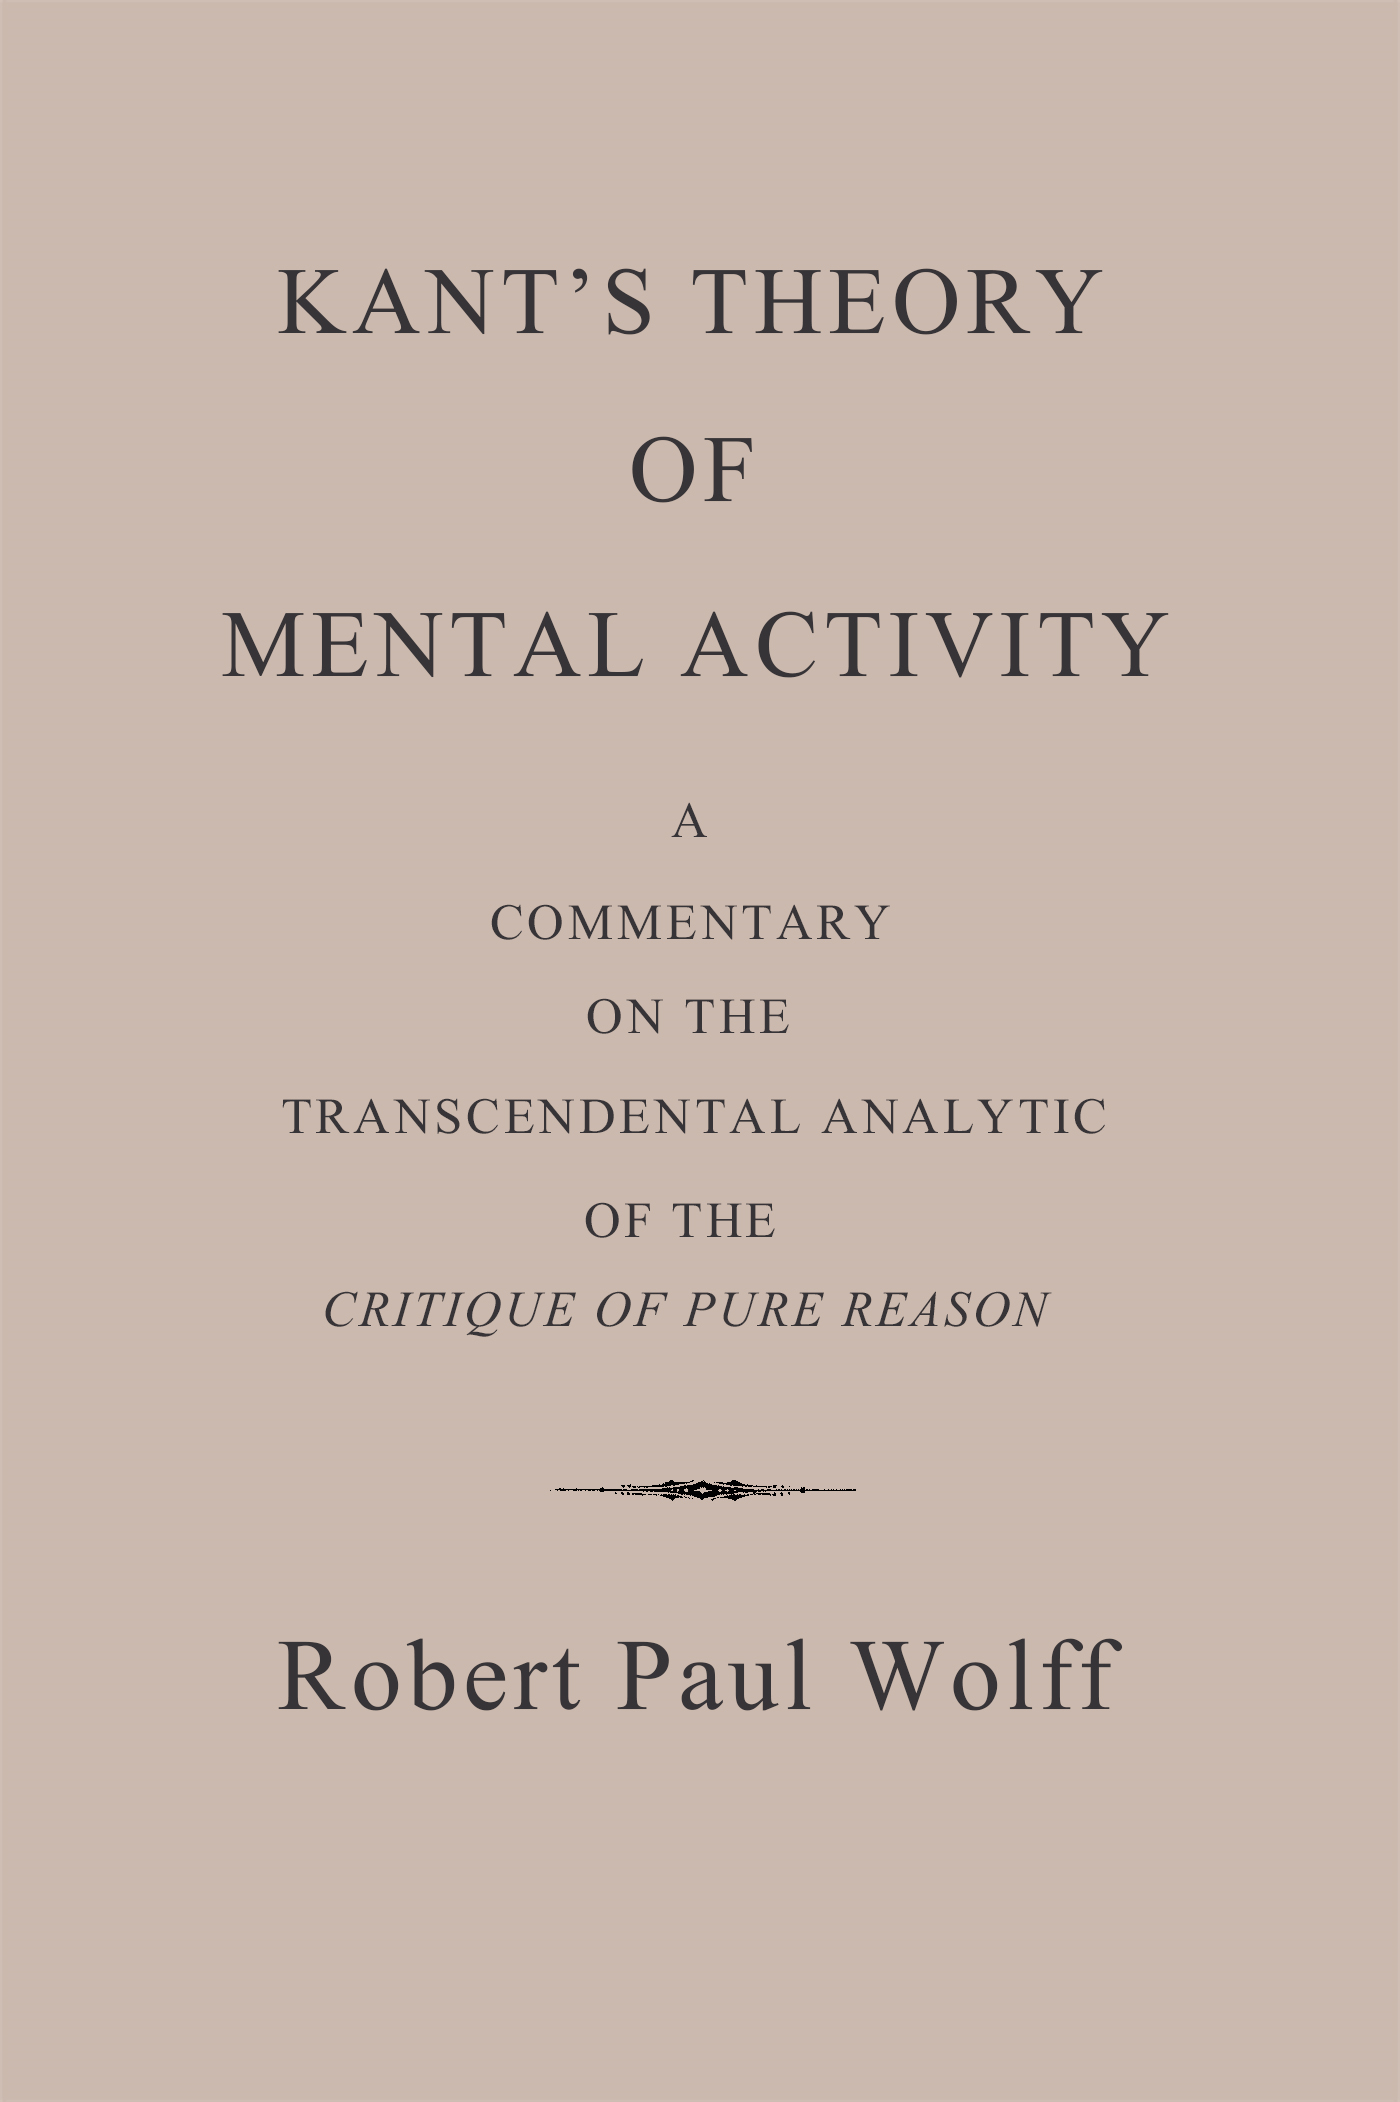 Robert Paul Wolff - Kant's Theory of Mental Activity